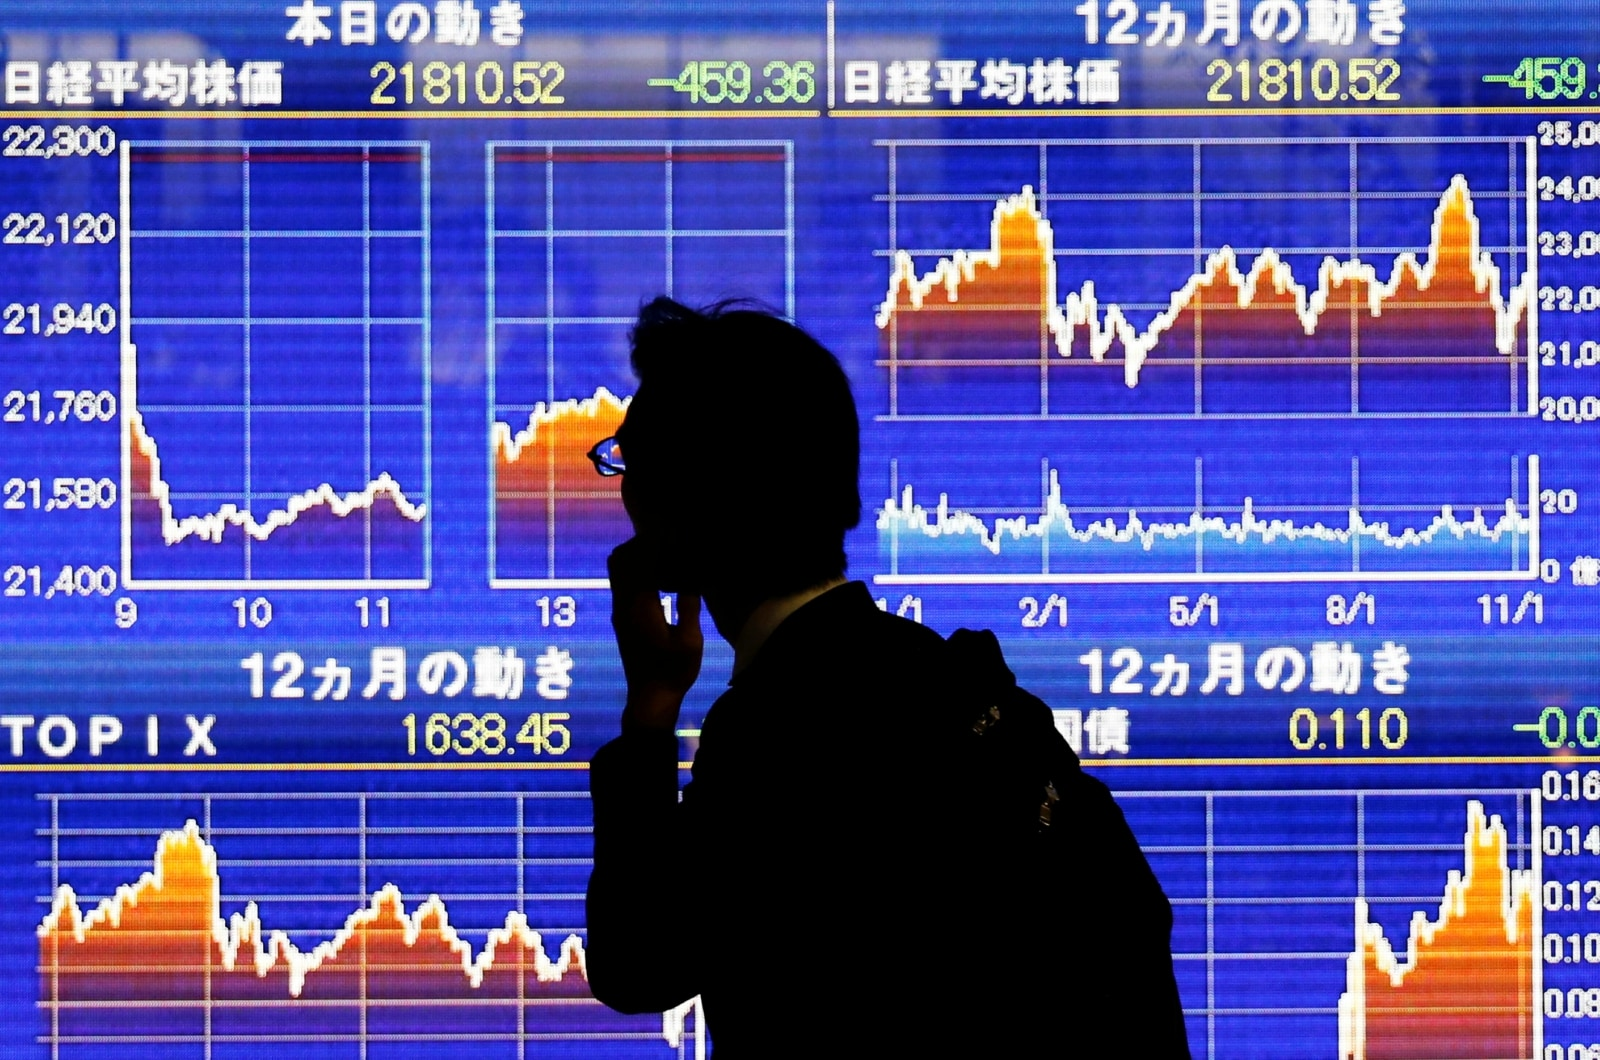 1. Asia: Asian share markets jumped on Wednesday as investors dared to hope the Federal Reserve would follow the lead of the European Central Bank and open the door to future rate cuts at its policy meeting later in the day. MSCI's broadest index of Asia-Pacific shares outside Japan climbed 0.6 percent in early trade, adding to a 1 percent gain the day before. InJapan, the Nikkei jumped 1.52 percent in early trade while Kospi of South Korea rose 1.09 percent. (Image: Reuters)